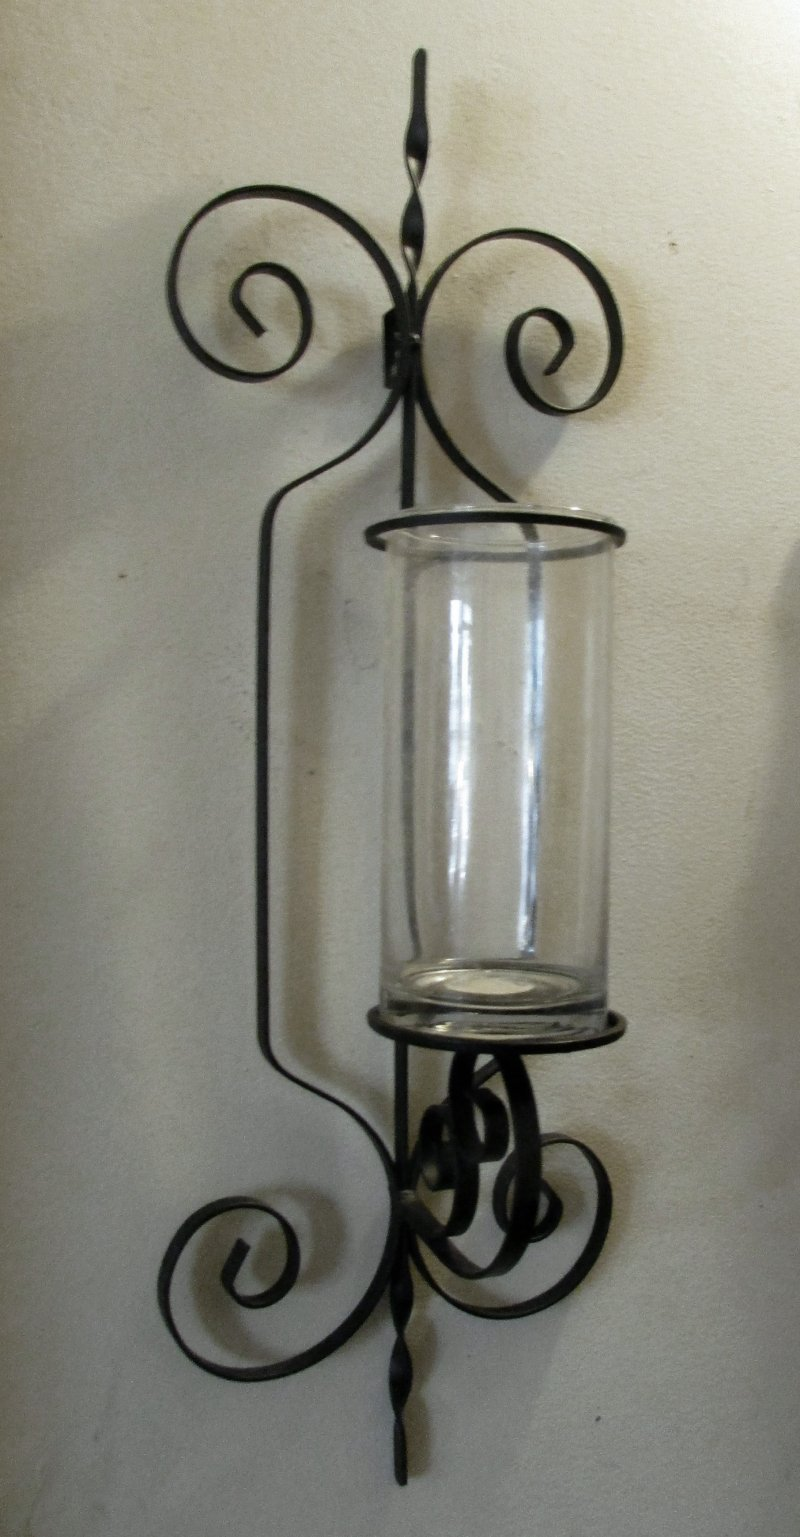 Wrought Iron Wall Sconce Candle Holder / Vase XL on Black Wrought Iron Wall Candle Holders id=62429